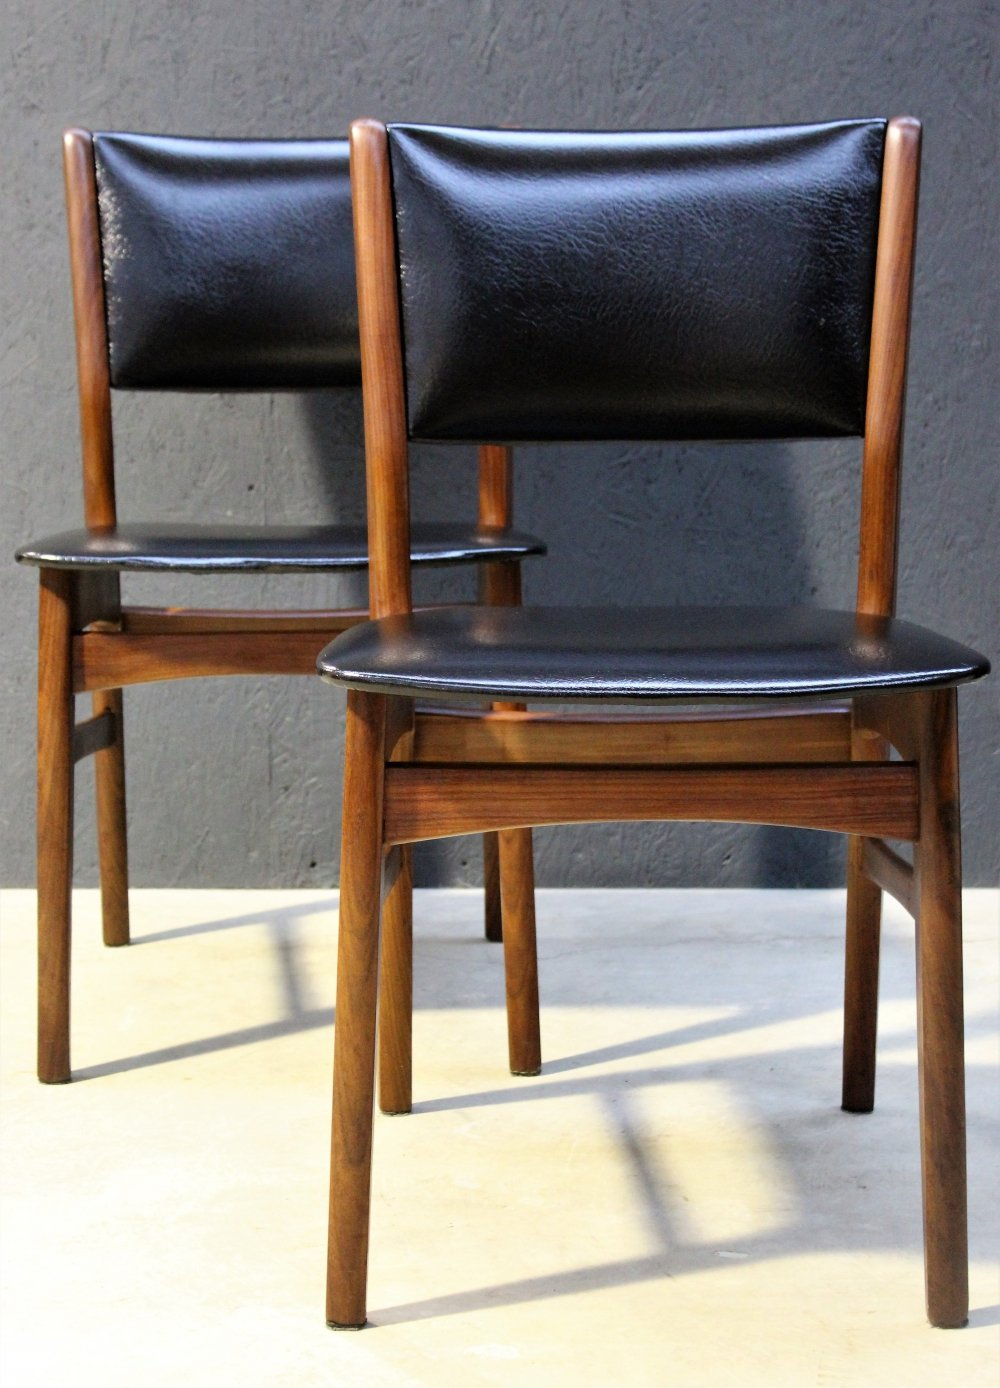 Pair of Bako dining chairs, 1960s